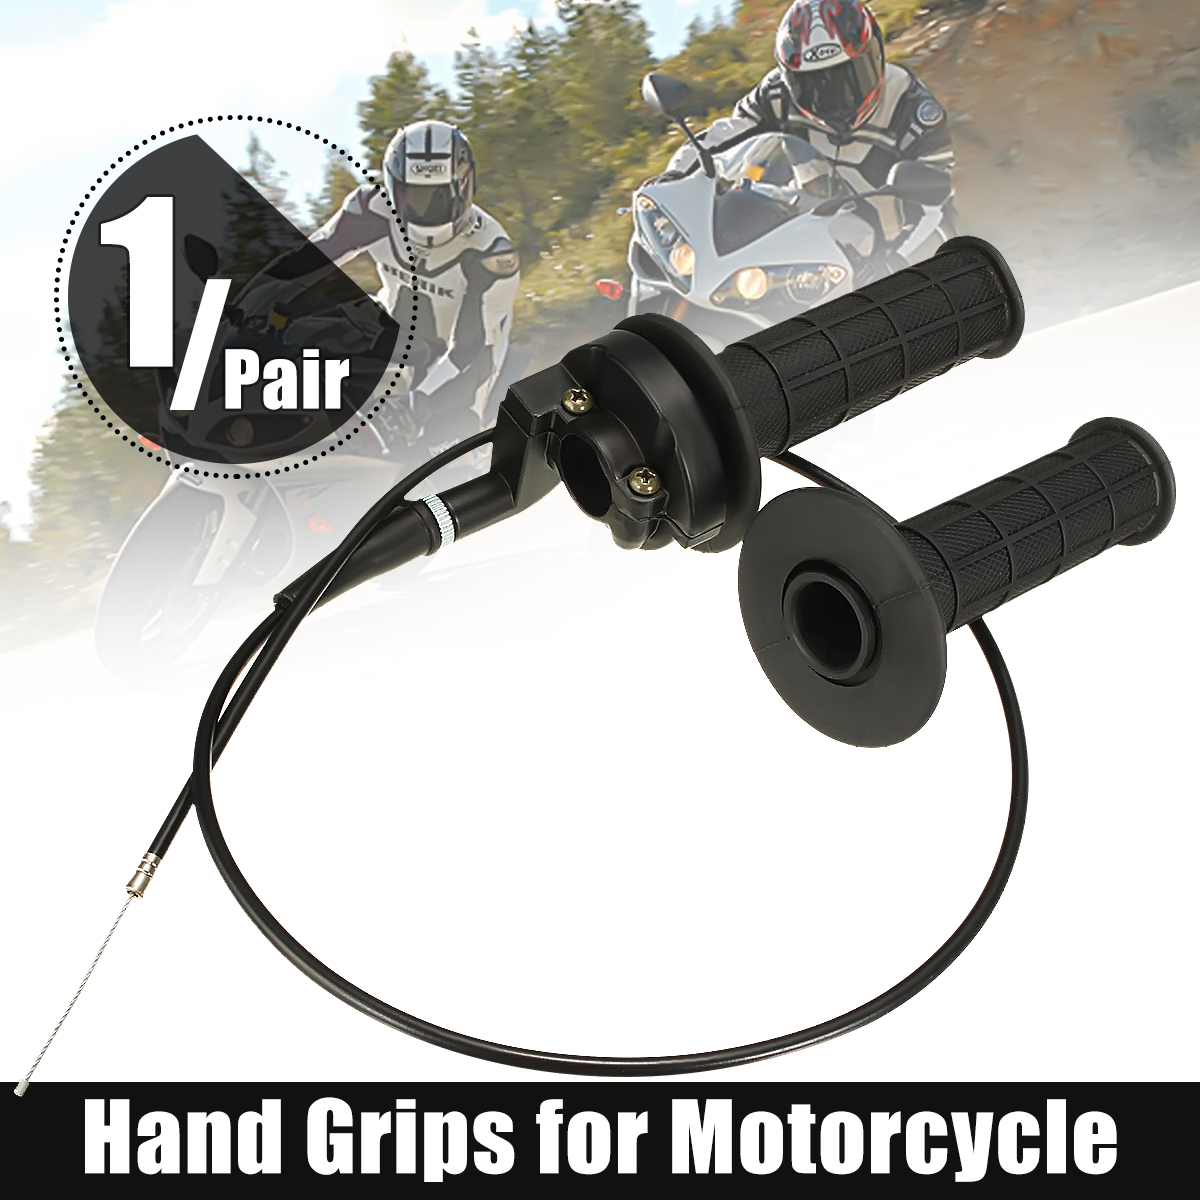 "7/8"" 22mm Handlebar Twist Throttle Hand Grip & Cable For ATV Quad Pit Dirt Bike Dirtbike 50cc 190 cc"